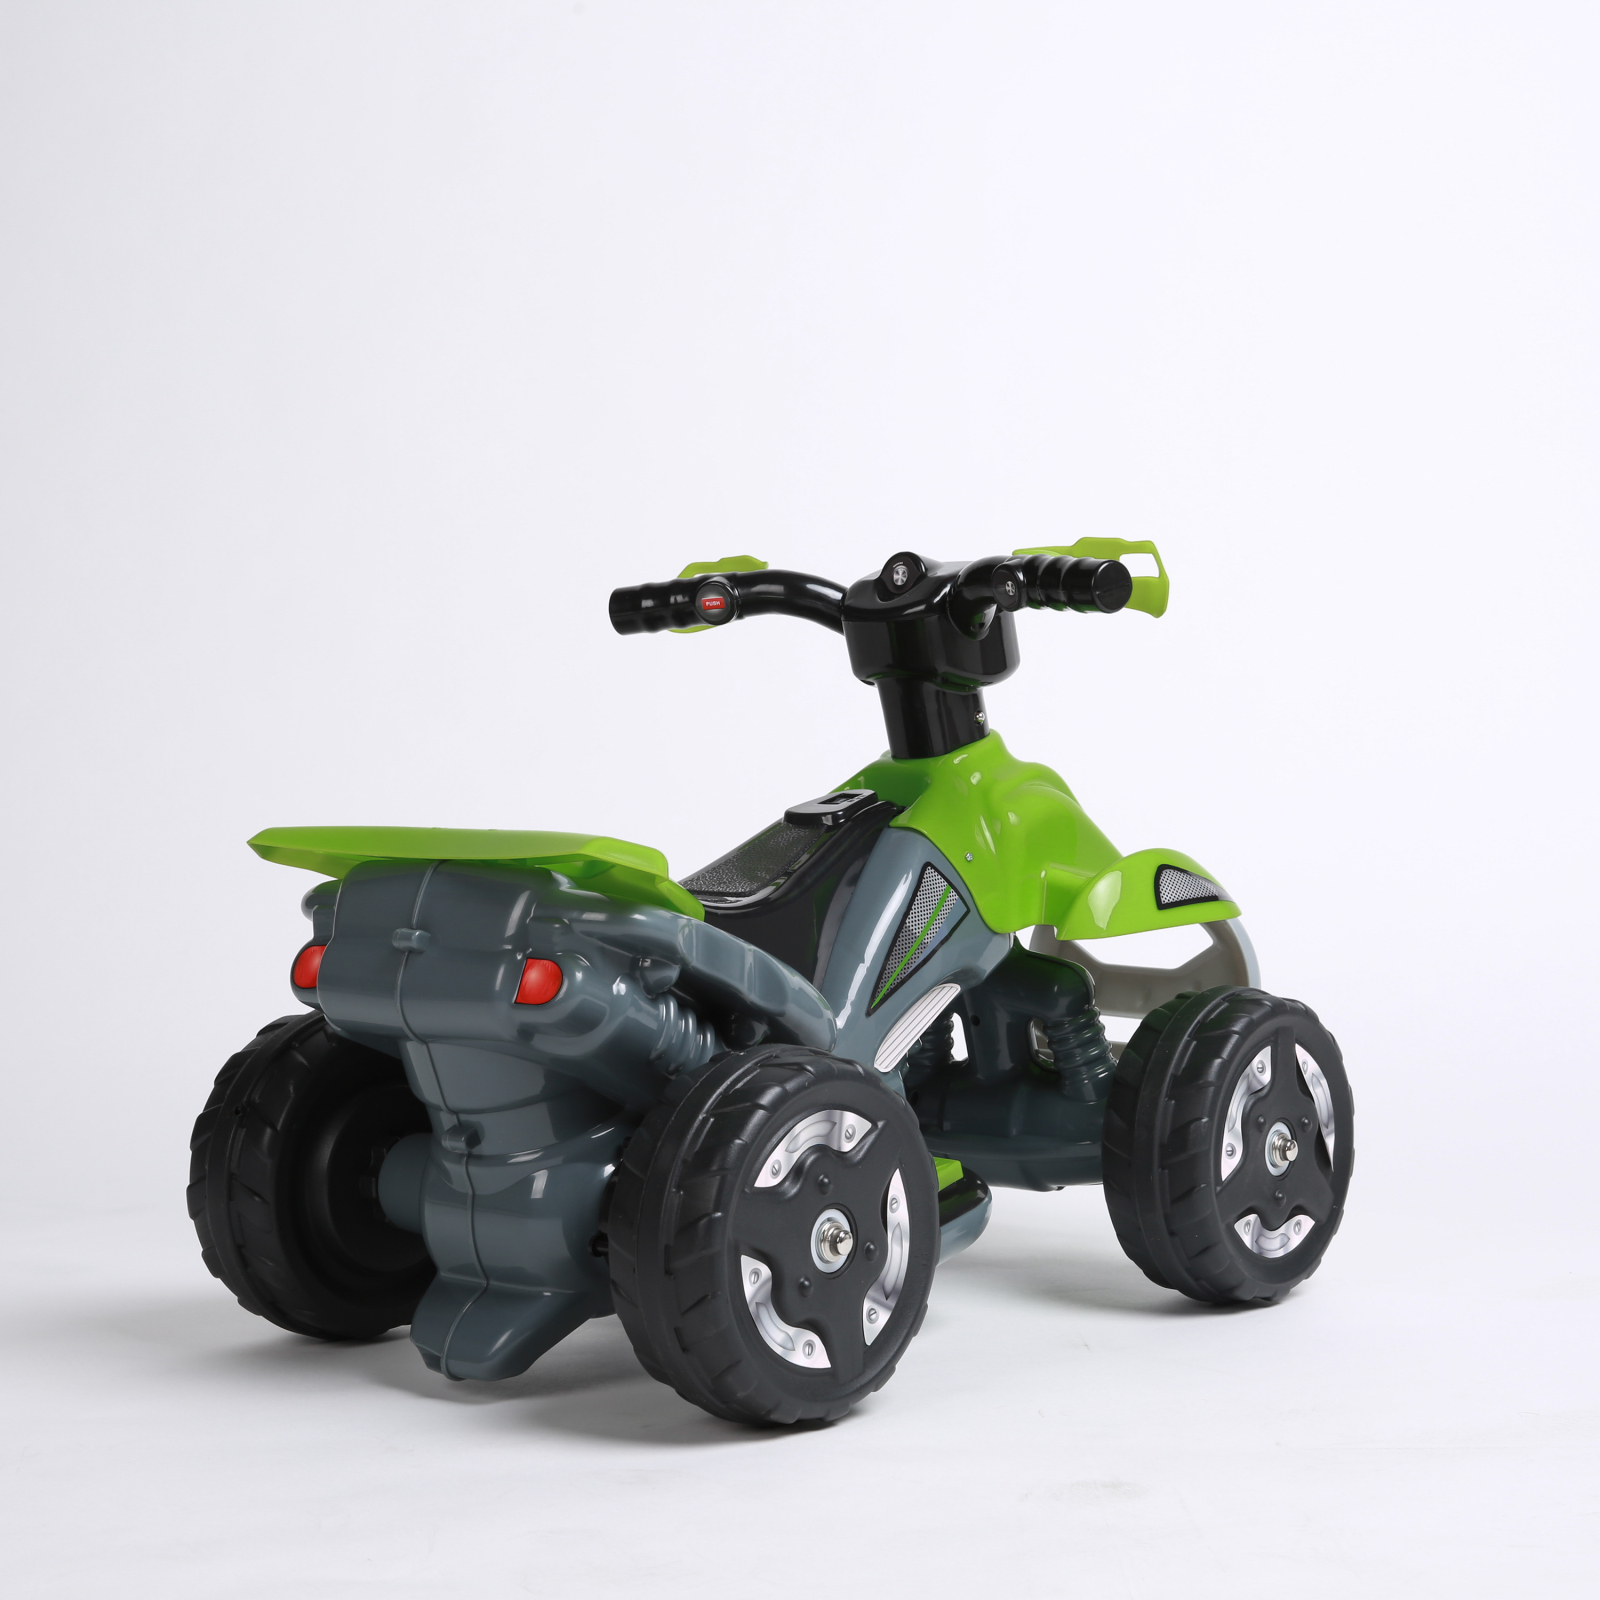 Kids Ride On 6V Battery Powered ATV Quad, Green